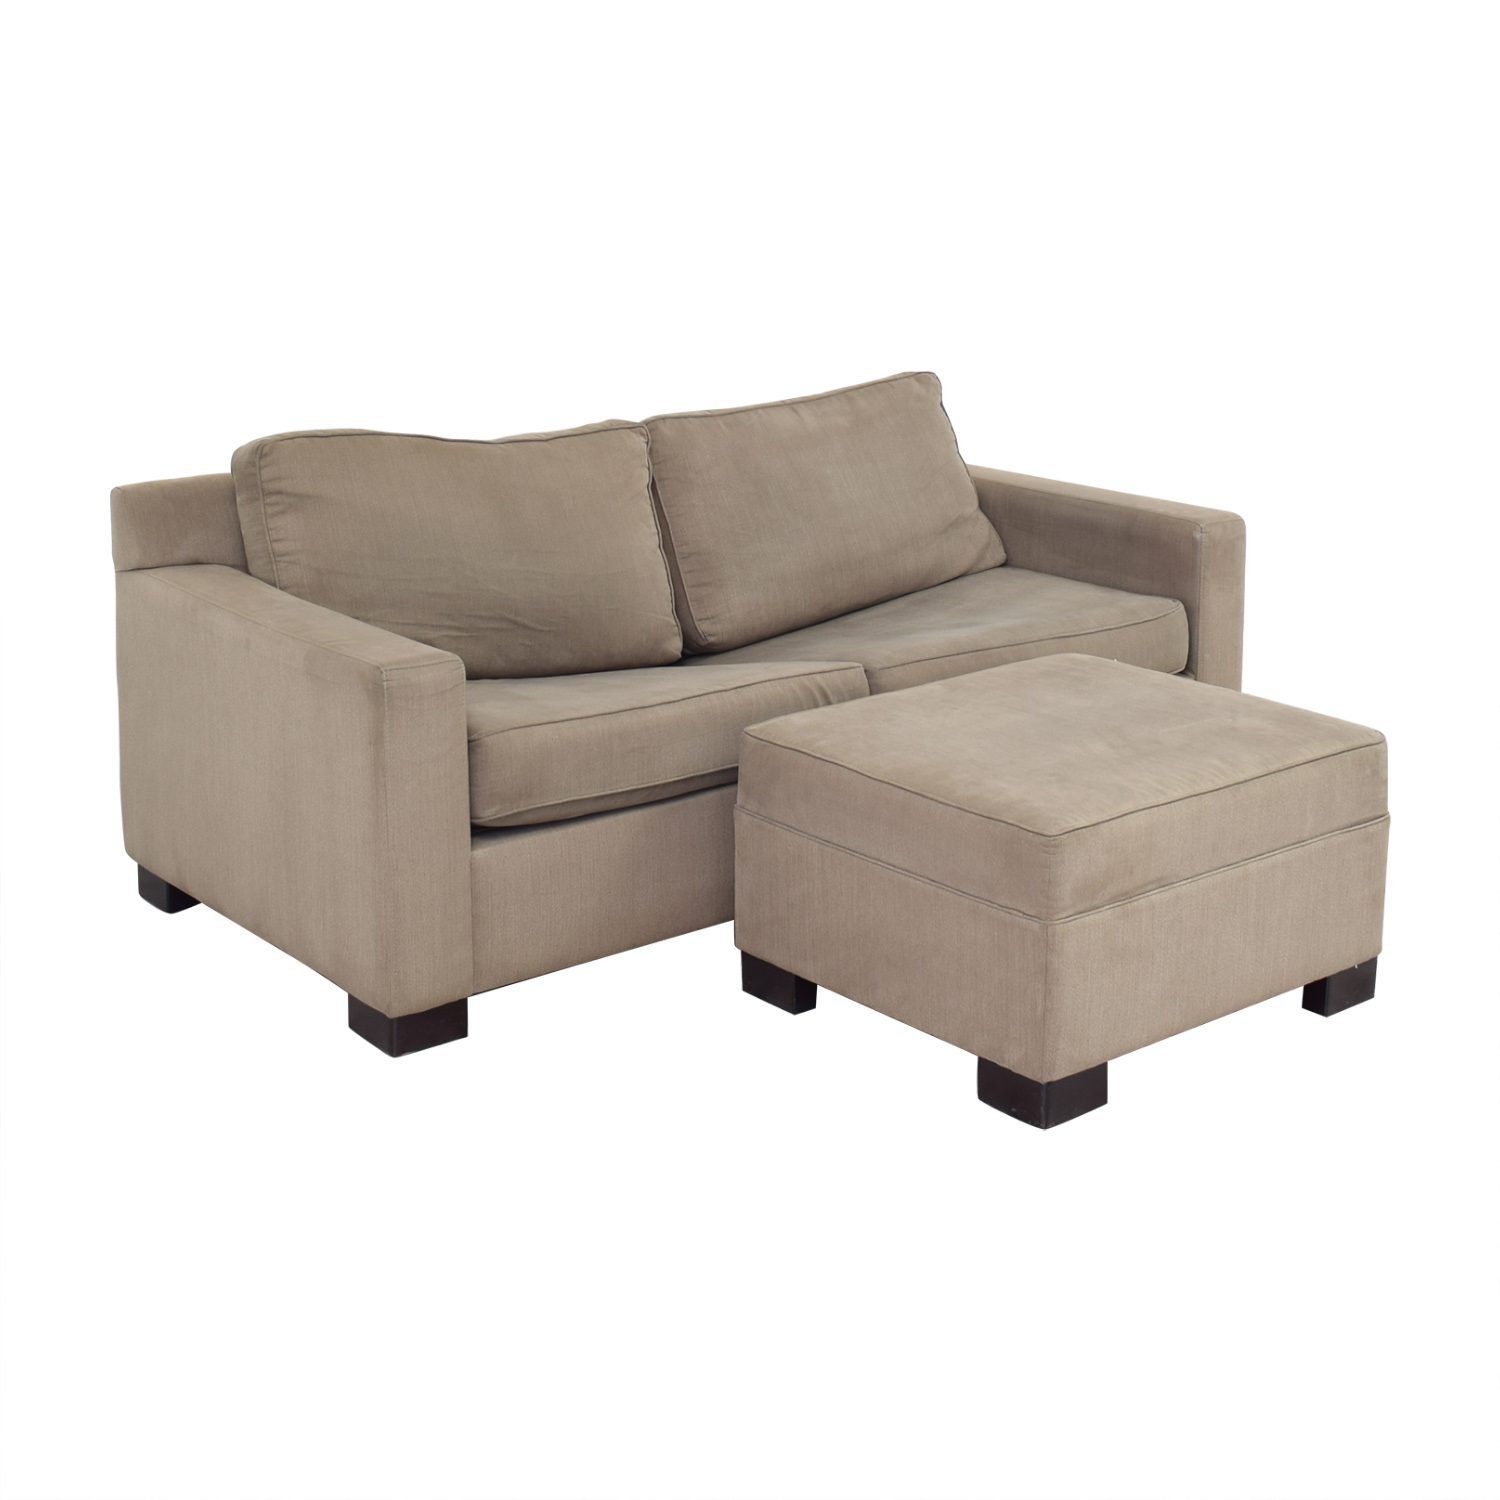 Urban Barn Urban Barn Apartment Sleeper Sofa & Ottoman on sale